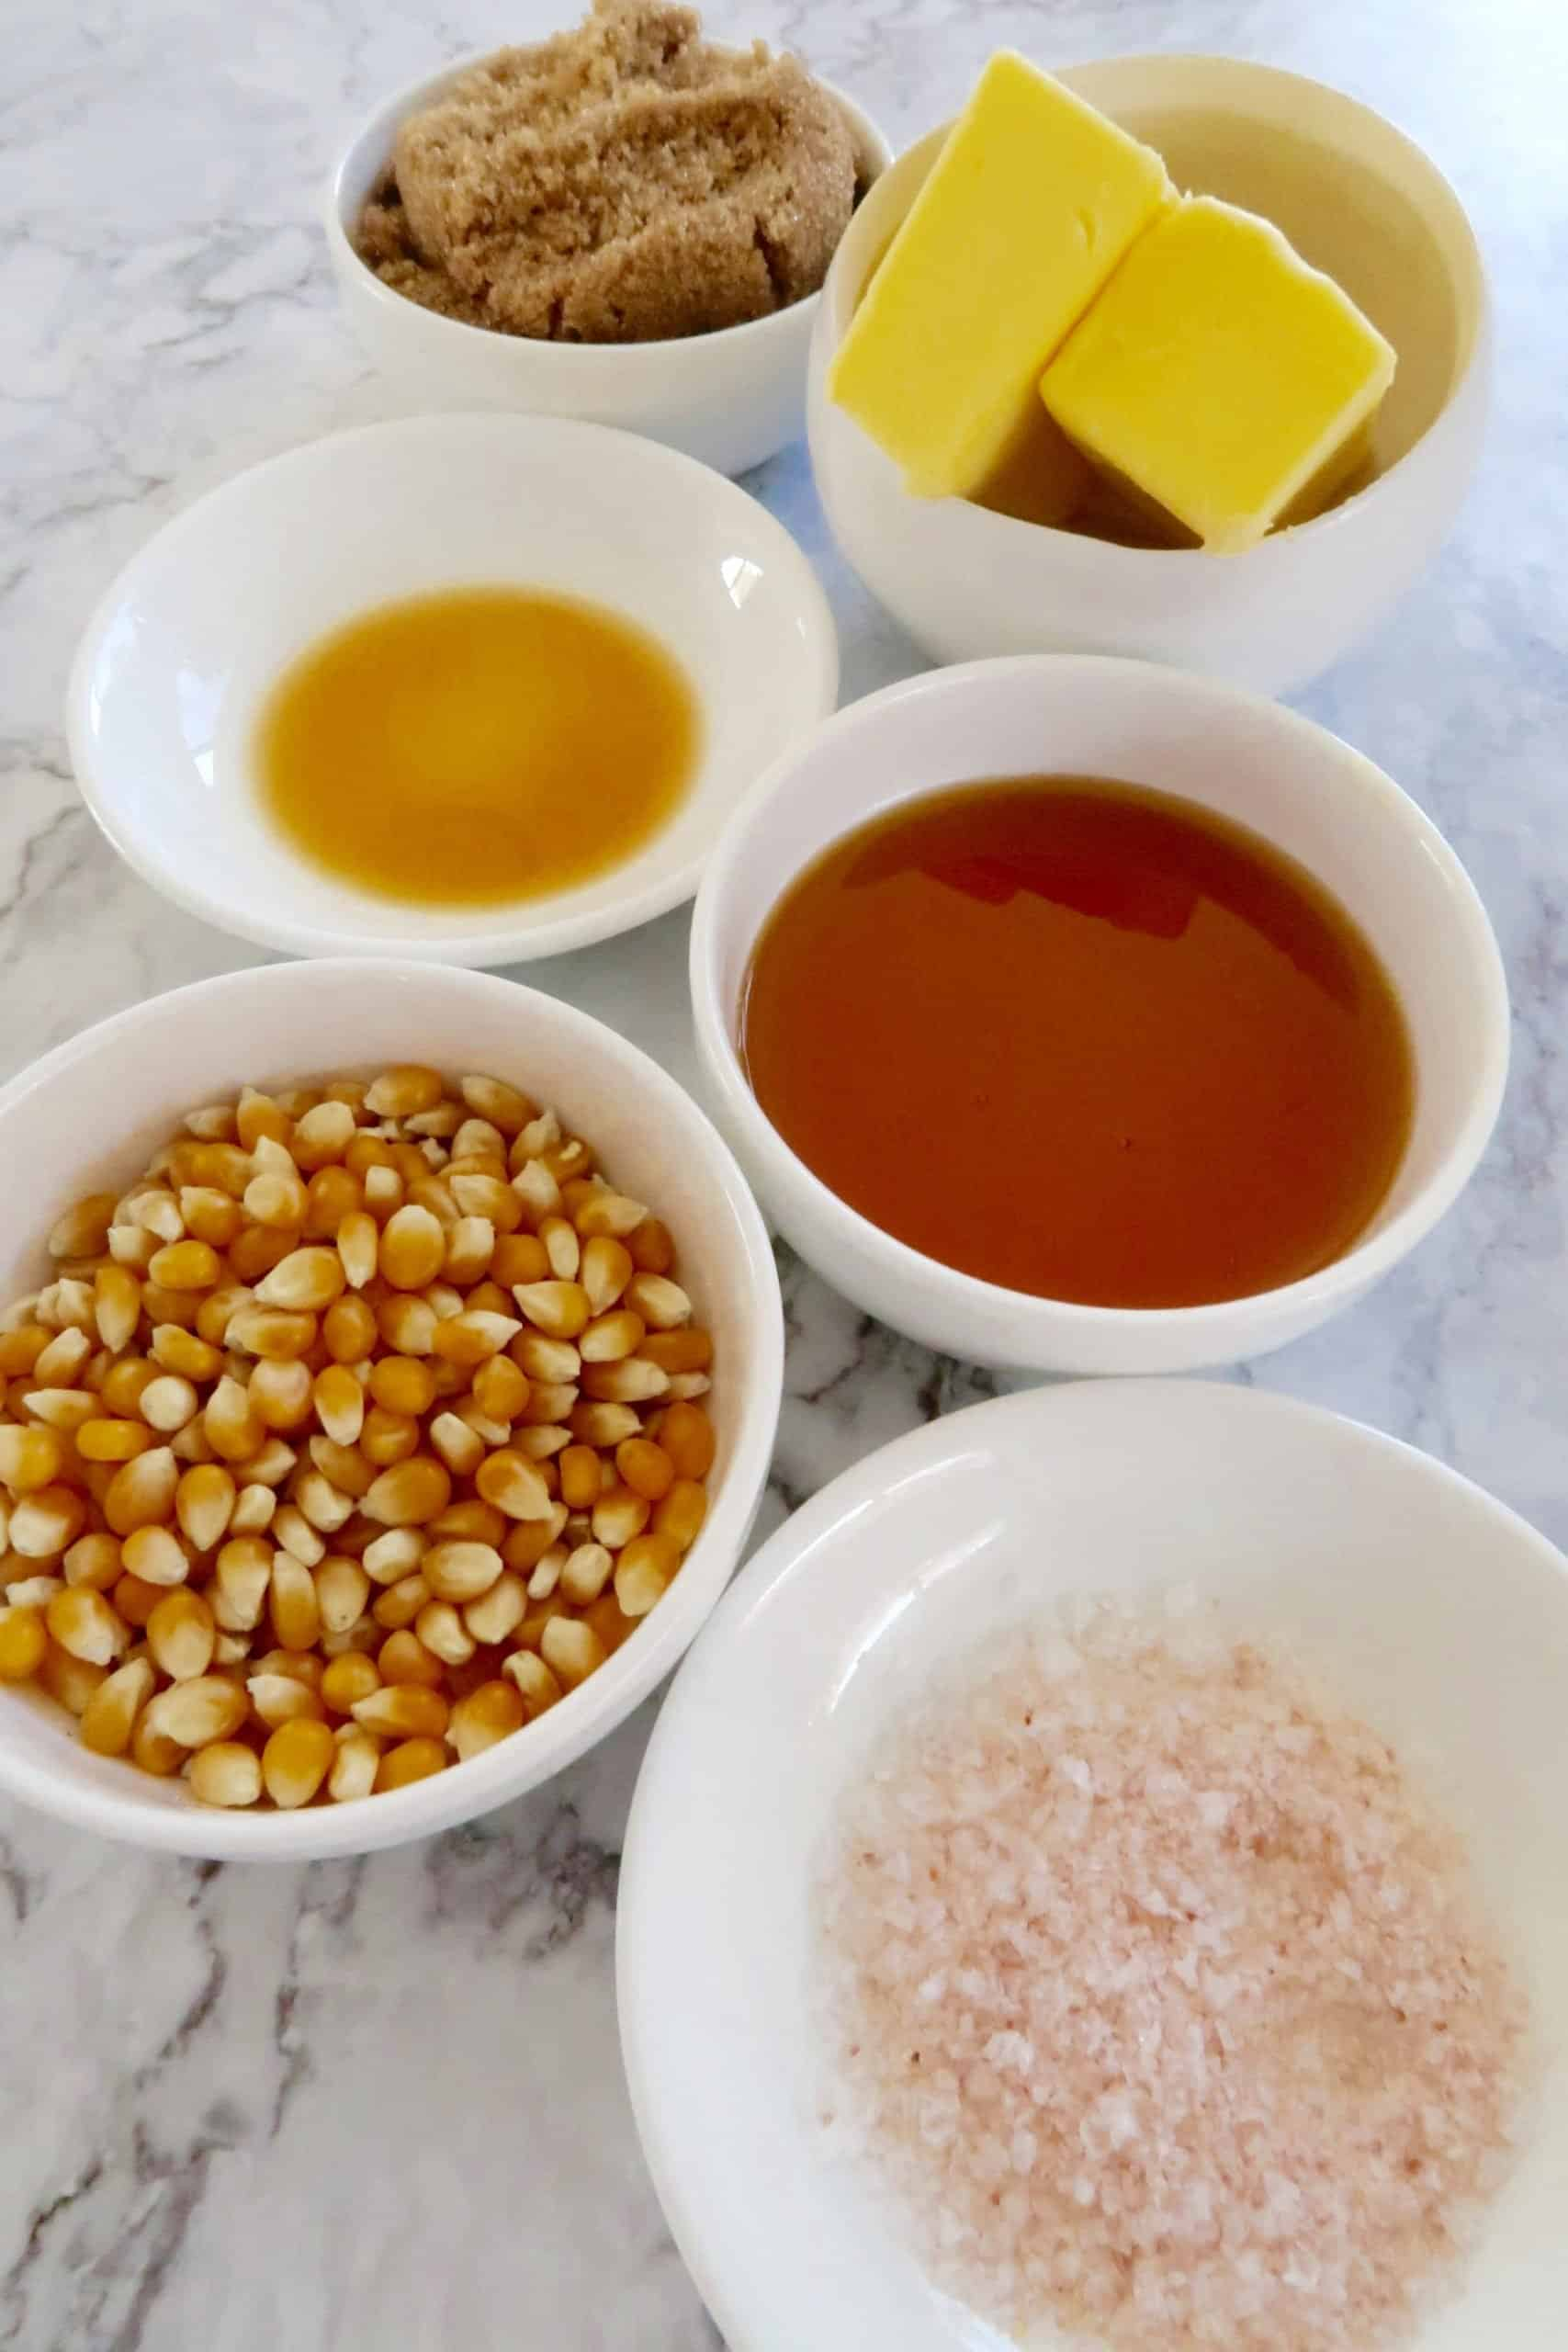 salted caramel popcorn ingredients laid out ready to make